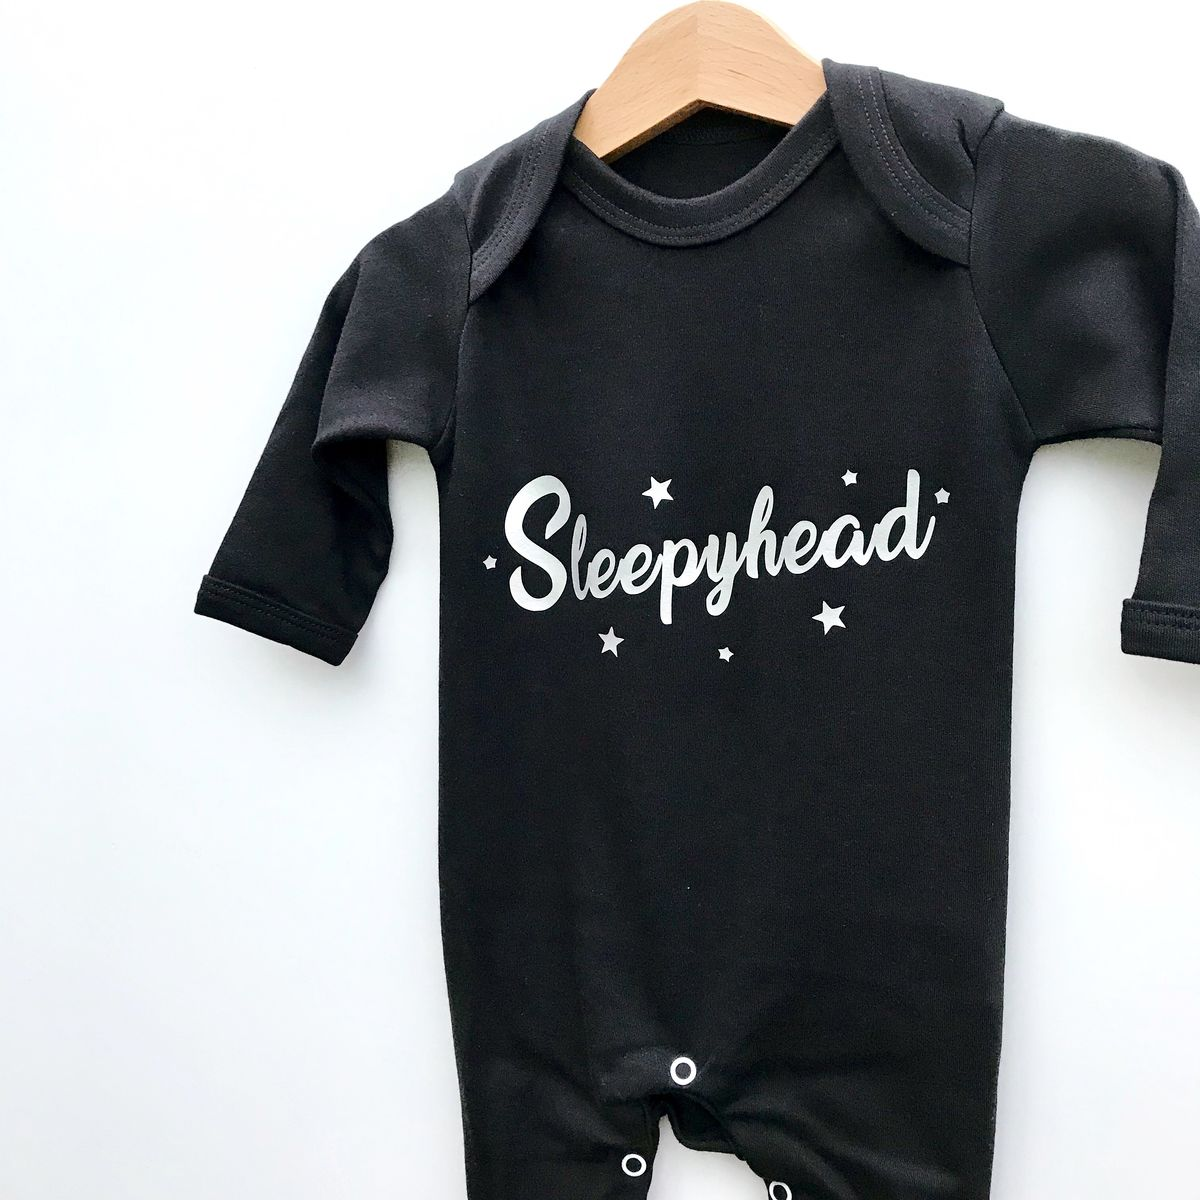 Sleepyhead Black/White Baby Romper Suits (various sizes) - product images  of